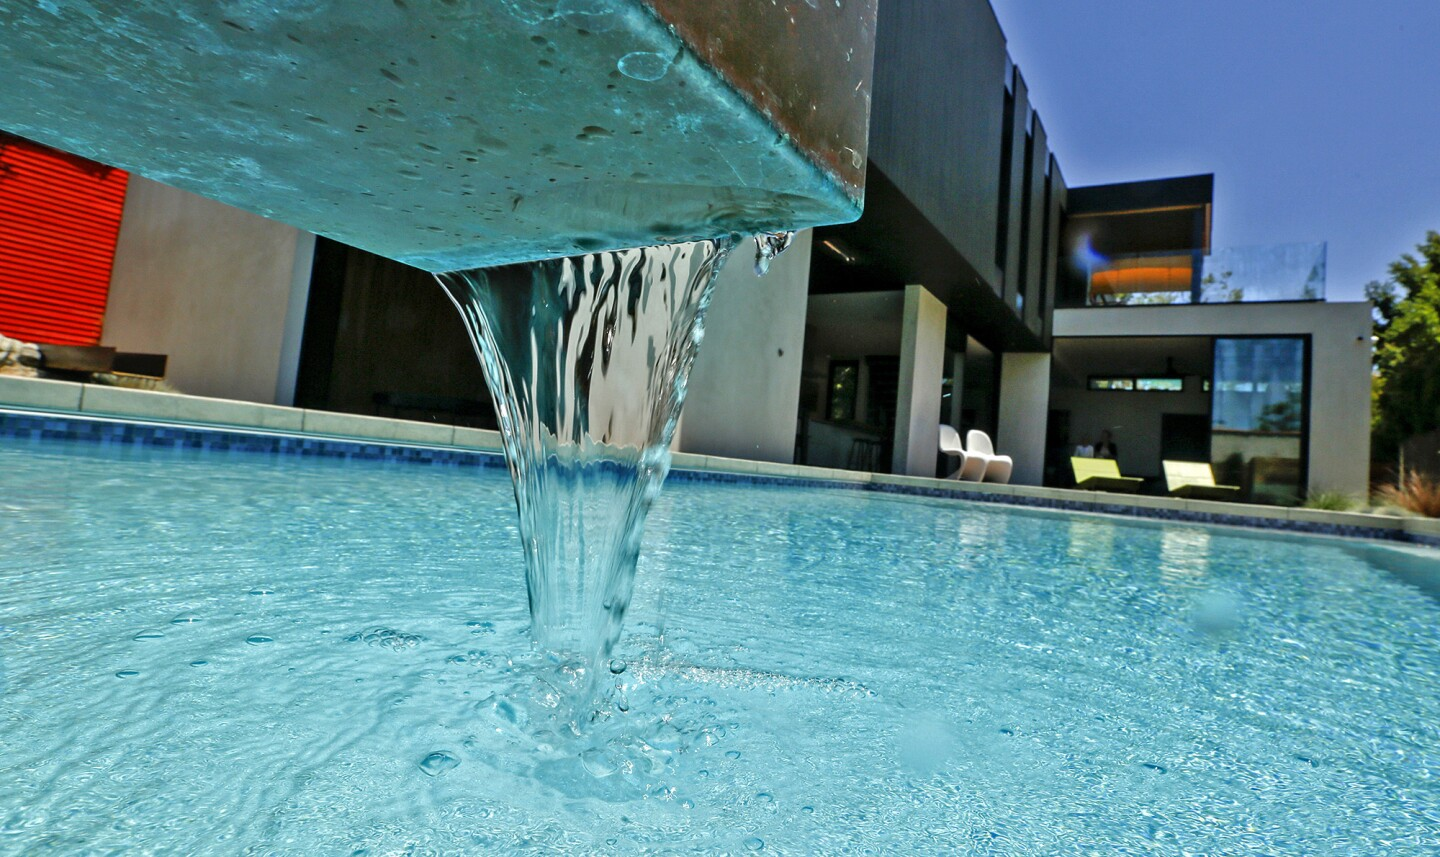 Water flows into the swimming pool through a sleek U-shaped metal channel.